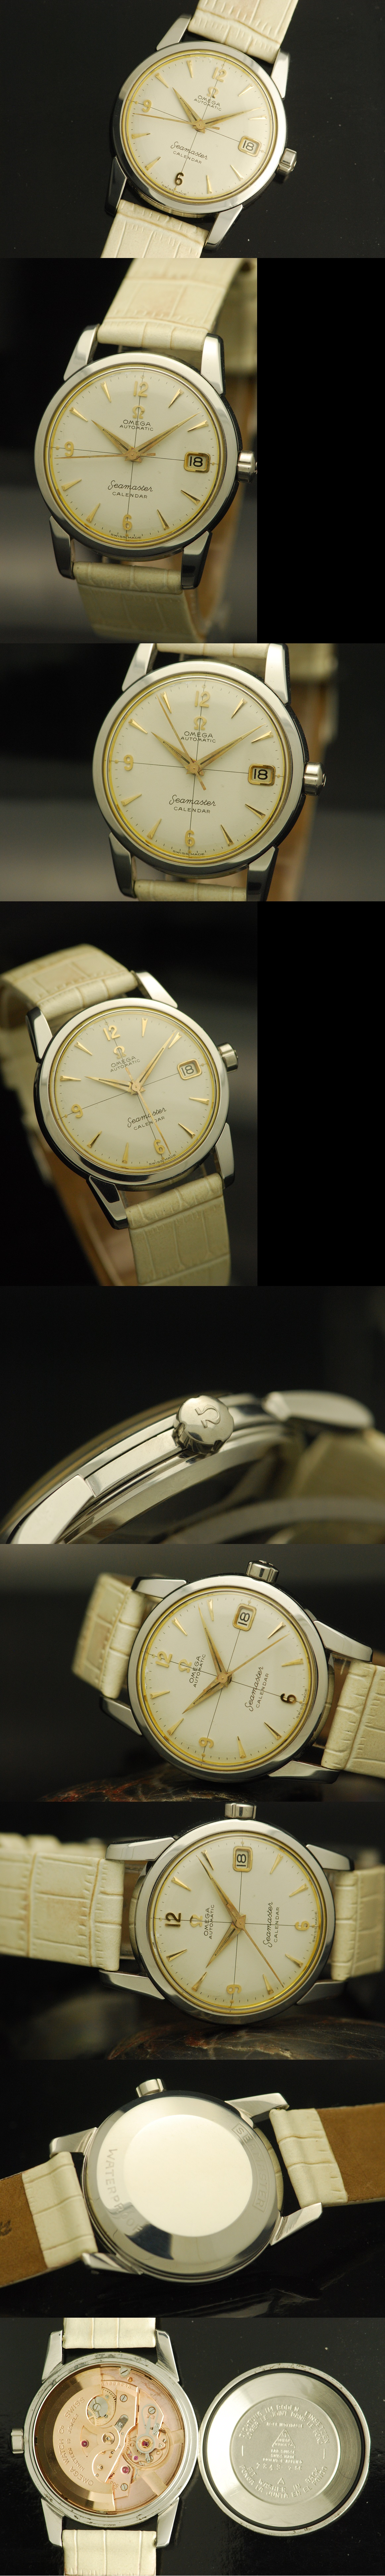 1955 Omega Seamaster Automatic Calendar Vintage Gent's Watch